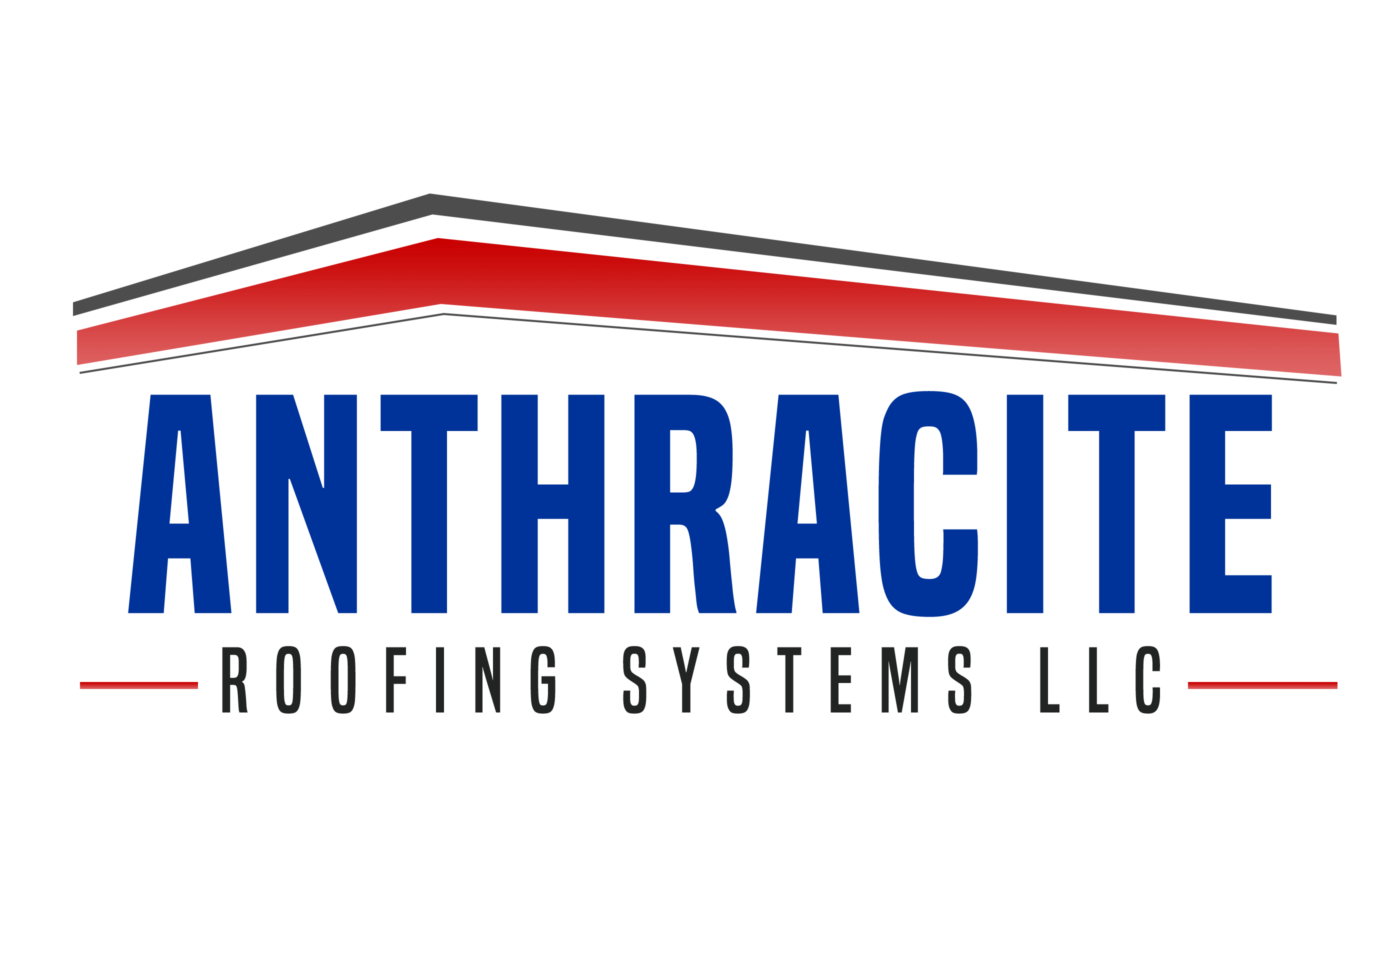 Anthracite Roofing Systems LLC, Edwardsville's Top Commercial Roofing Contractor Gets Mule-Hide Installer Certified in Pennsylvania